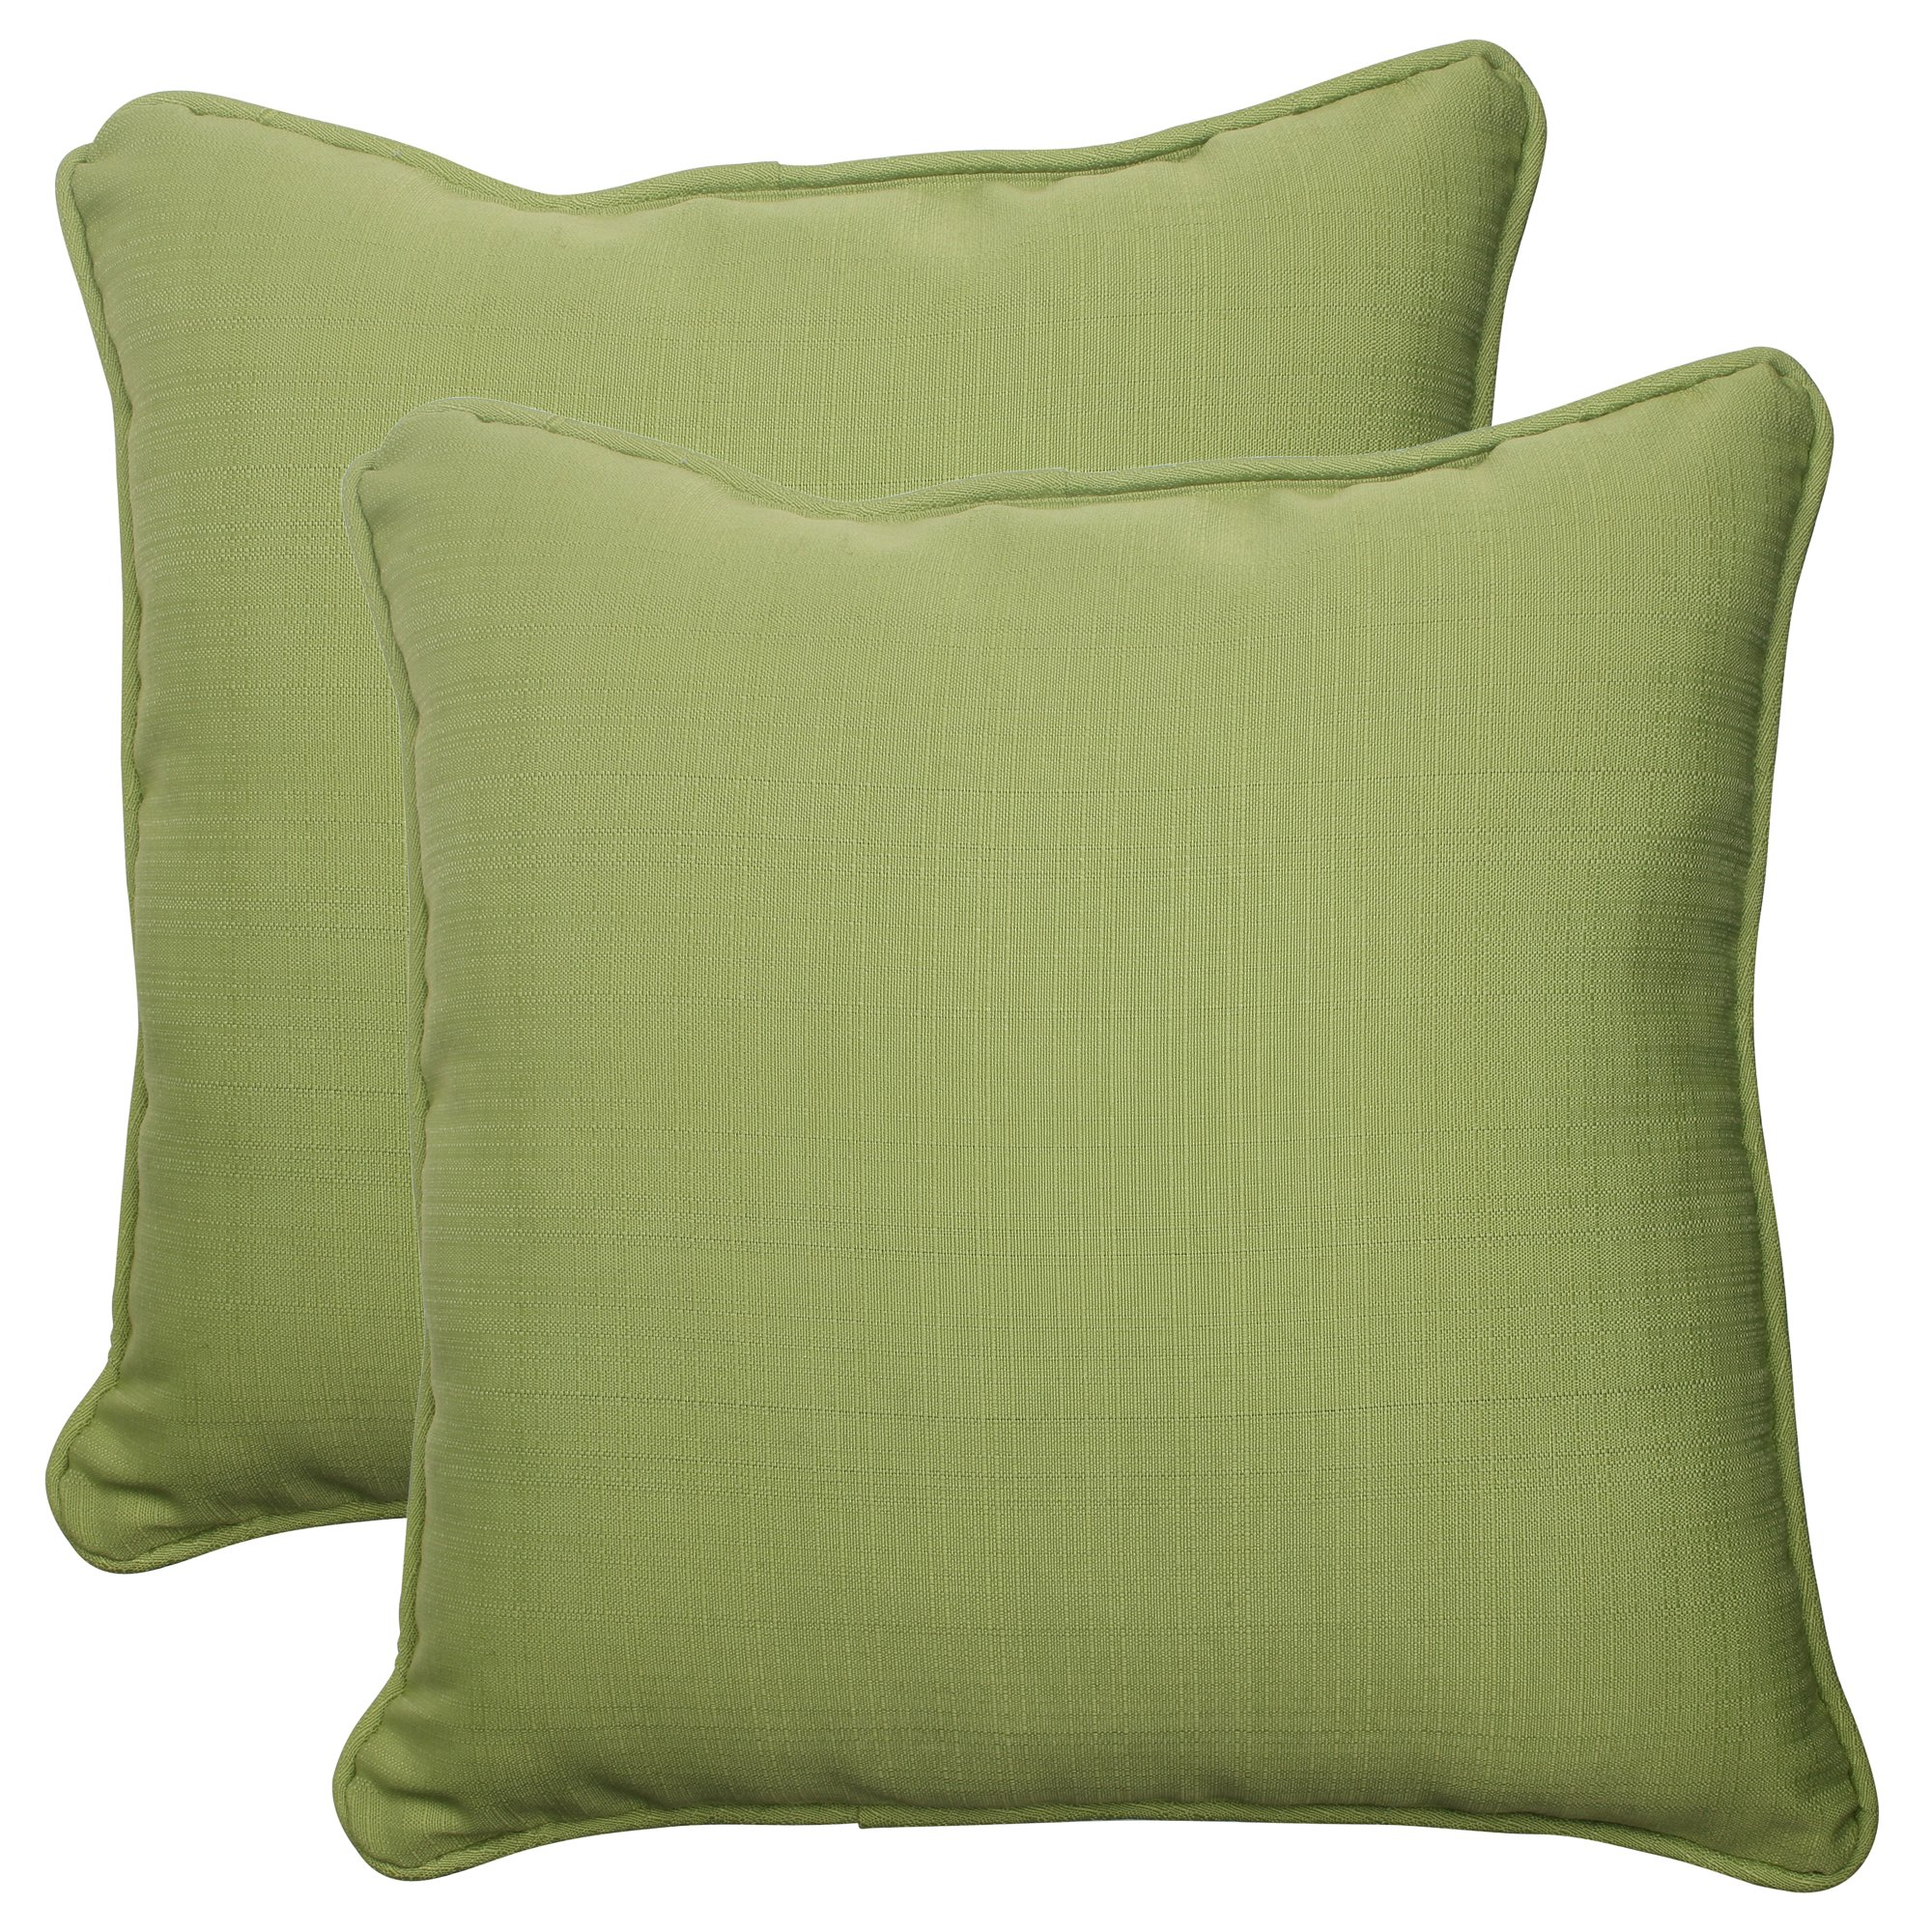 Pillow Perfect Outdoor Forsyth Corded Throw Pillow, 18.5-Inch, Green, Set of 2